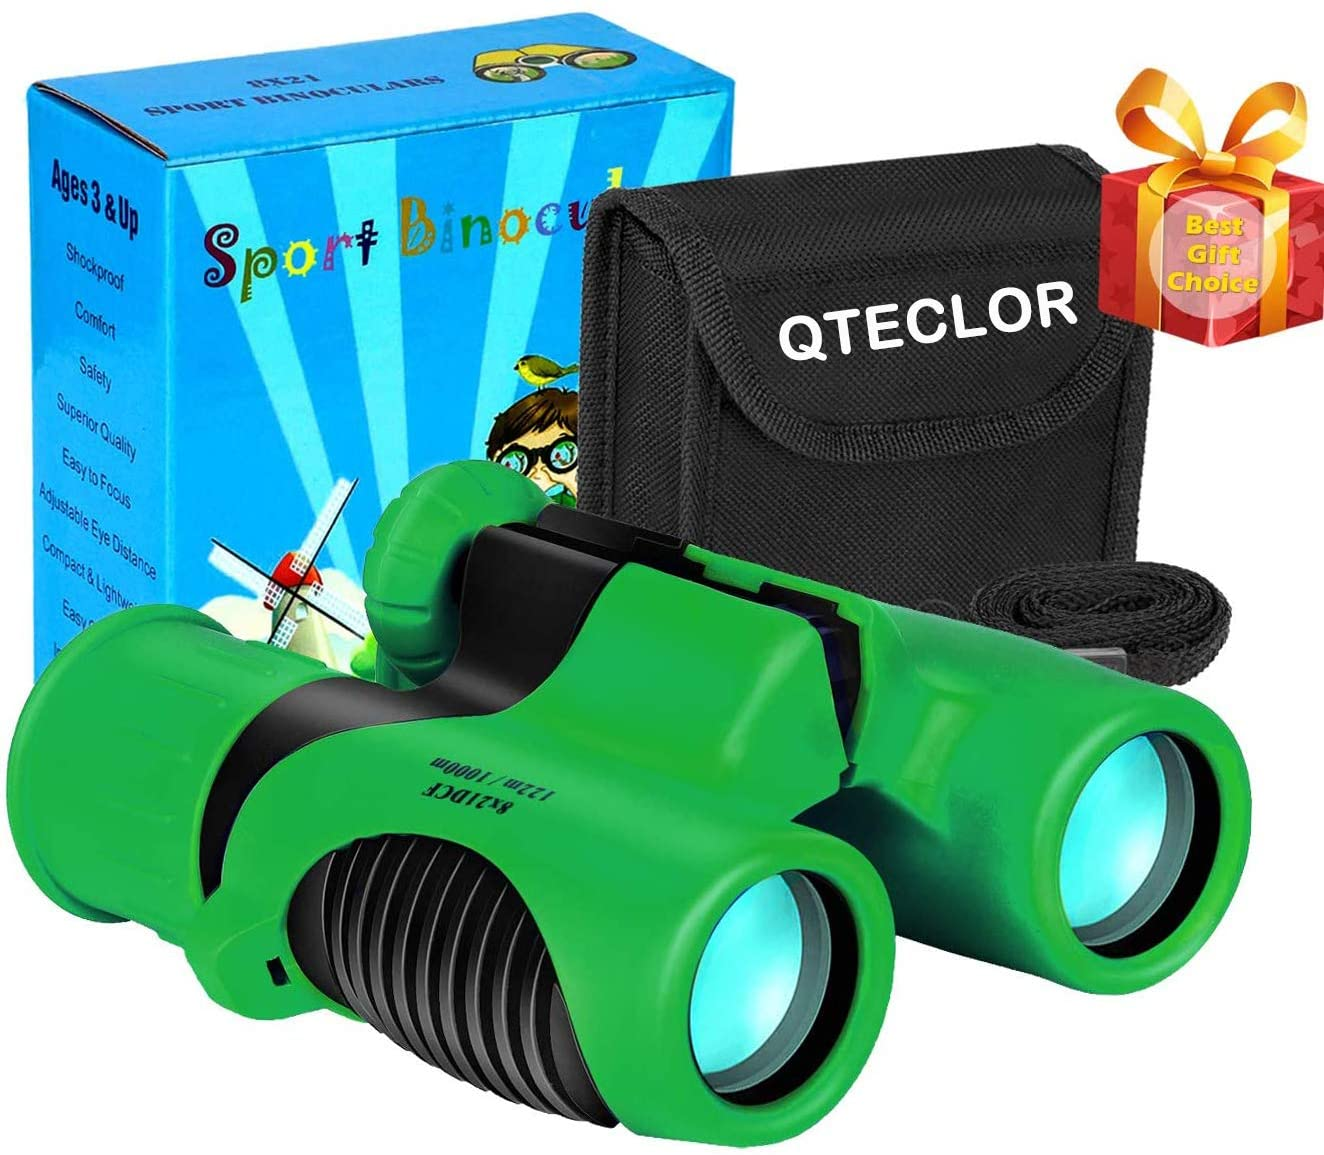 Compact Mini Binoculars for Kids – 8x21 Zoom Kids Binoculars Toy Gift Shock Proof for 3 4 5 6 7 8 9 10 11 12 13 Years Old Boys Girls Bird Watching Sporting Events Children Best Present (Green)